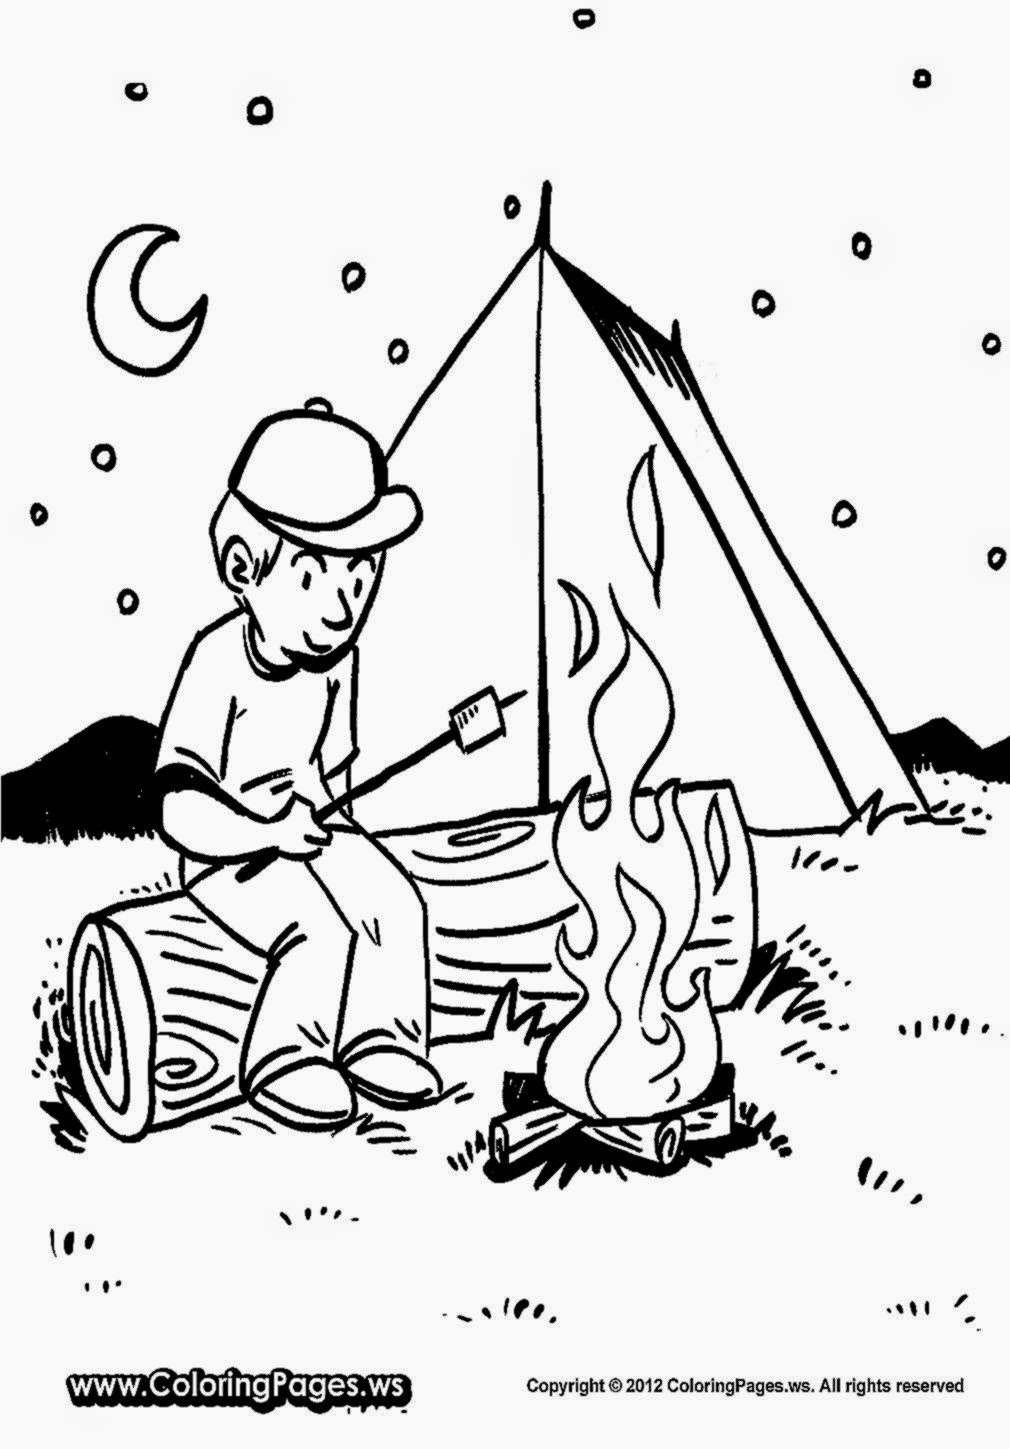 Camping coloring sheets free coloring sheet for Camp coloring pages